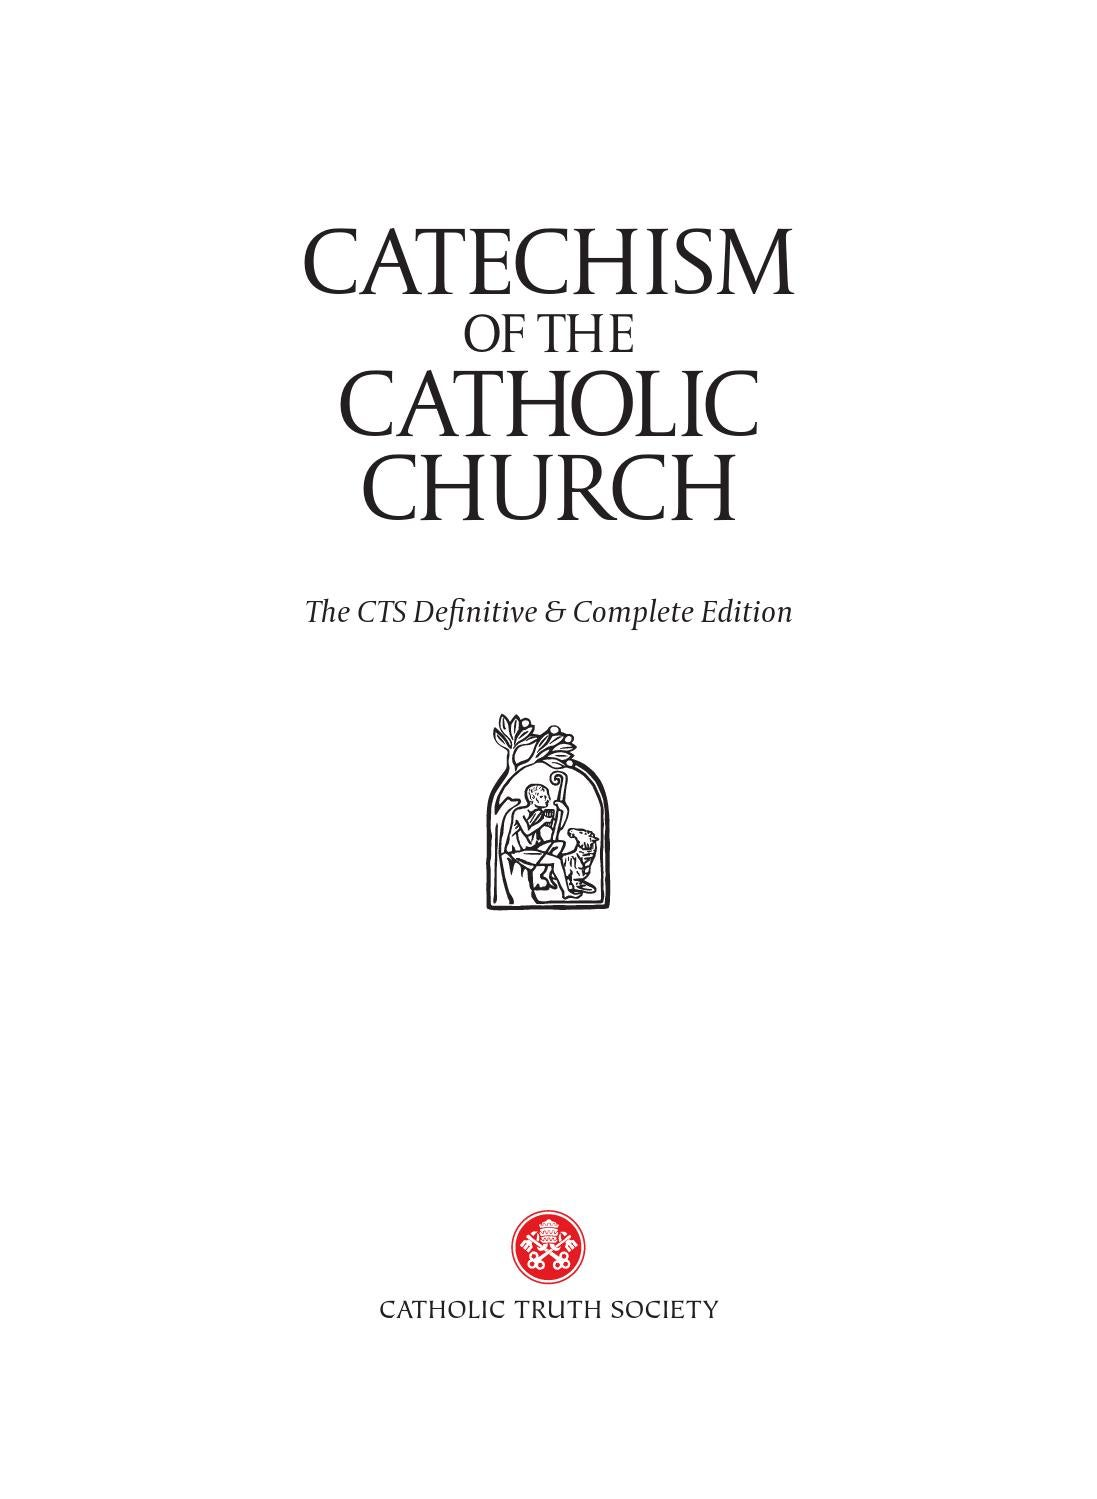 Catechism of the catholic church preview by Catholic Truth